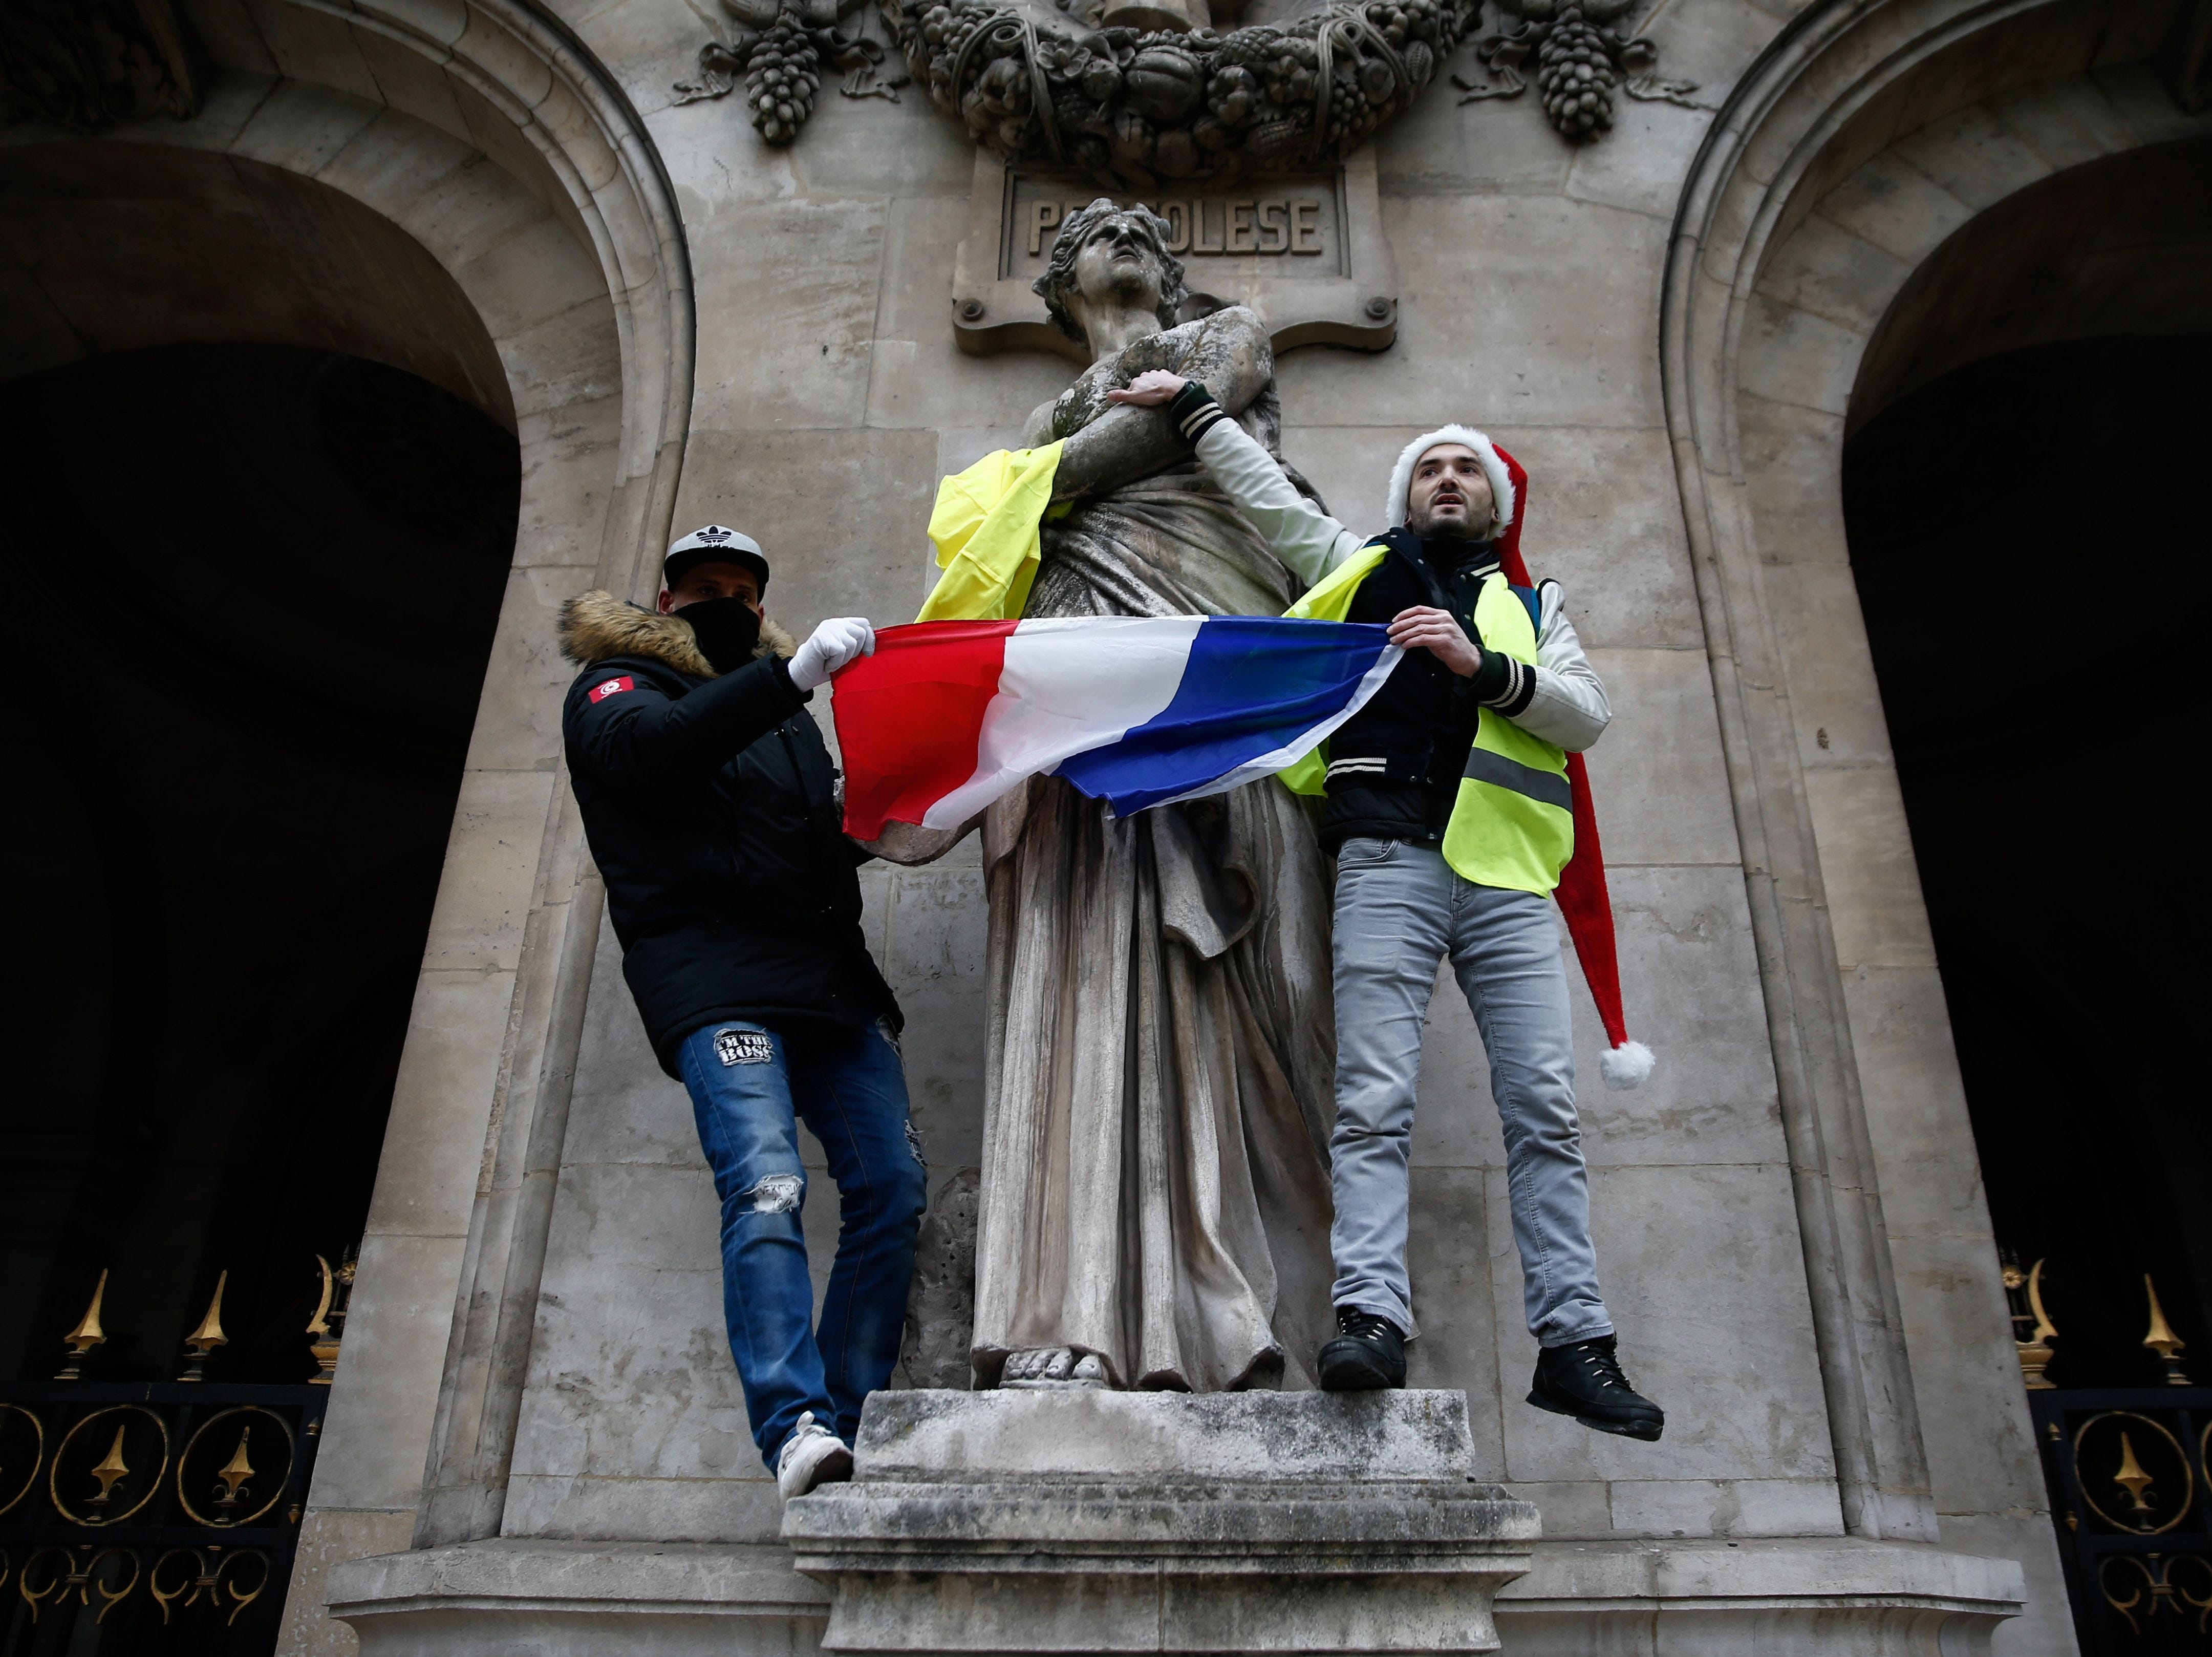 Protesters wearing a yellow vest (gilets jaunes) wave the French national flag during a demonstration against rising costs of living blamed on high taxes in Paris, on Dec. 15, 2018.